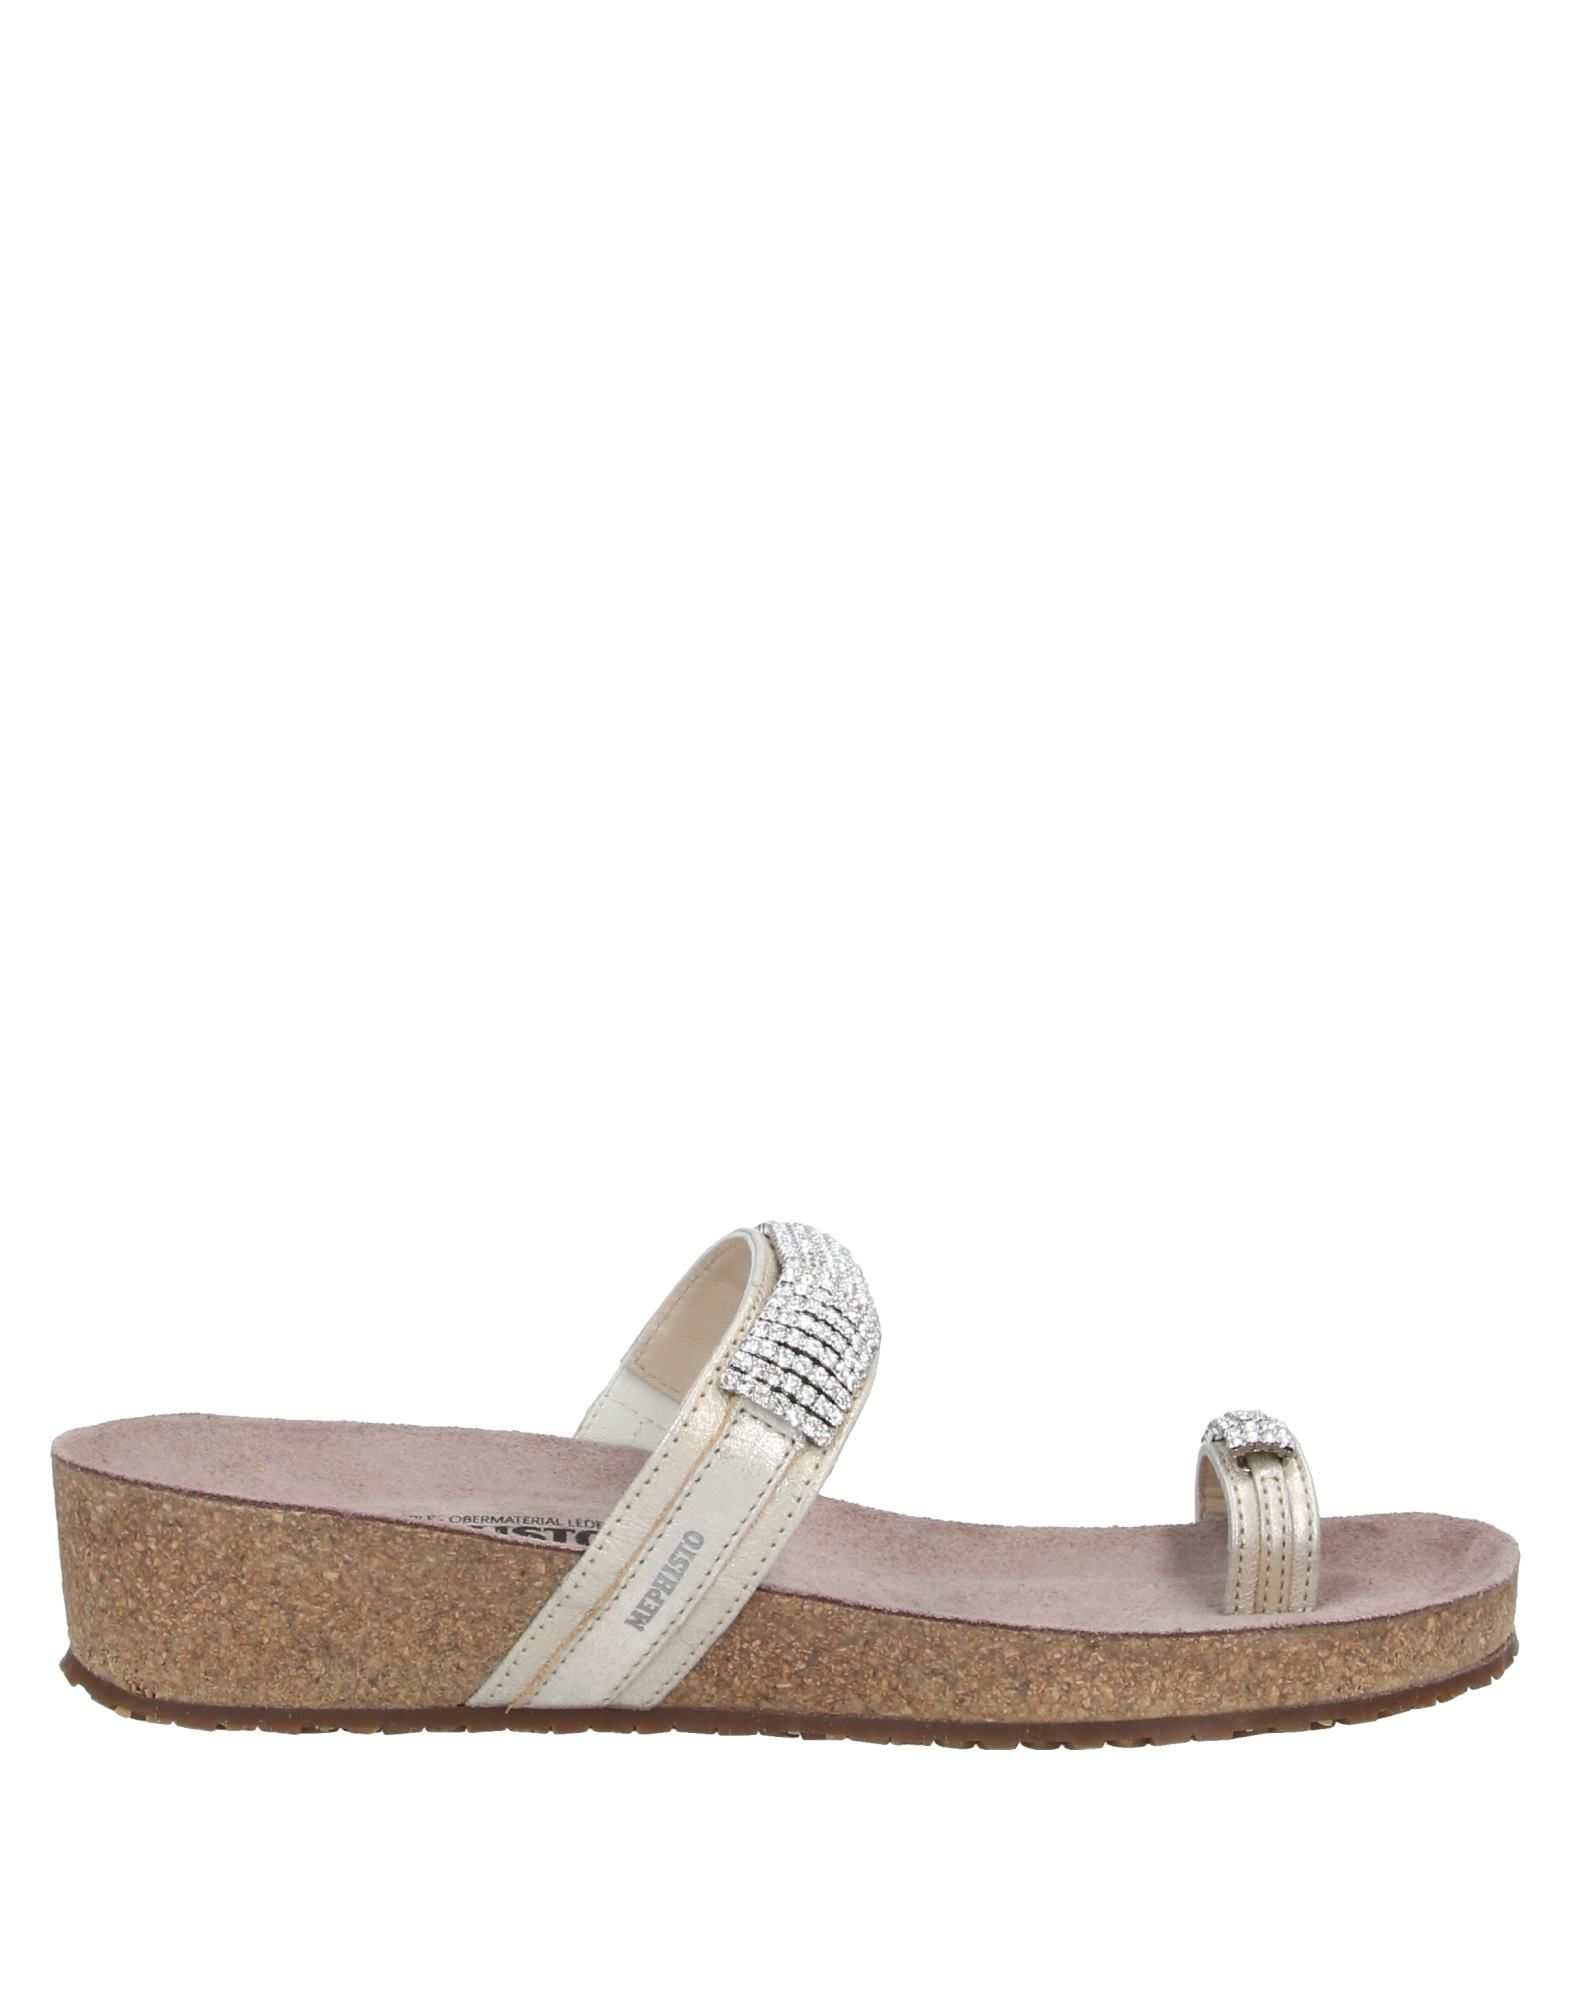 MEPHISTO Toe strap sandals. laminated effect, logo, rhinestones, solid color, round toeline, wedge heel, leather lining, rubber cleated sole, contains non-textile parts of animal origin. Soft Leather